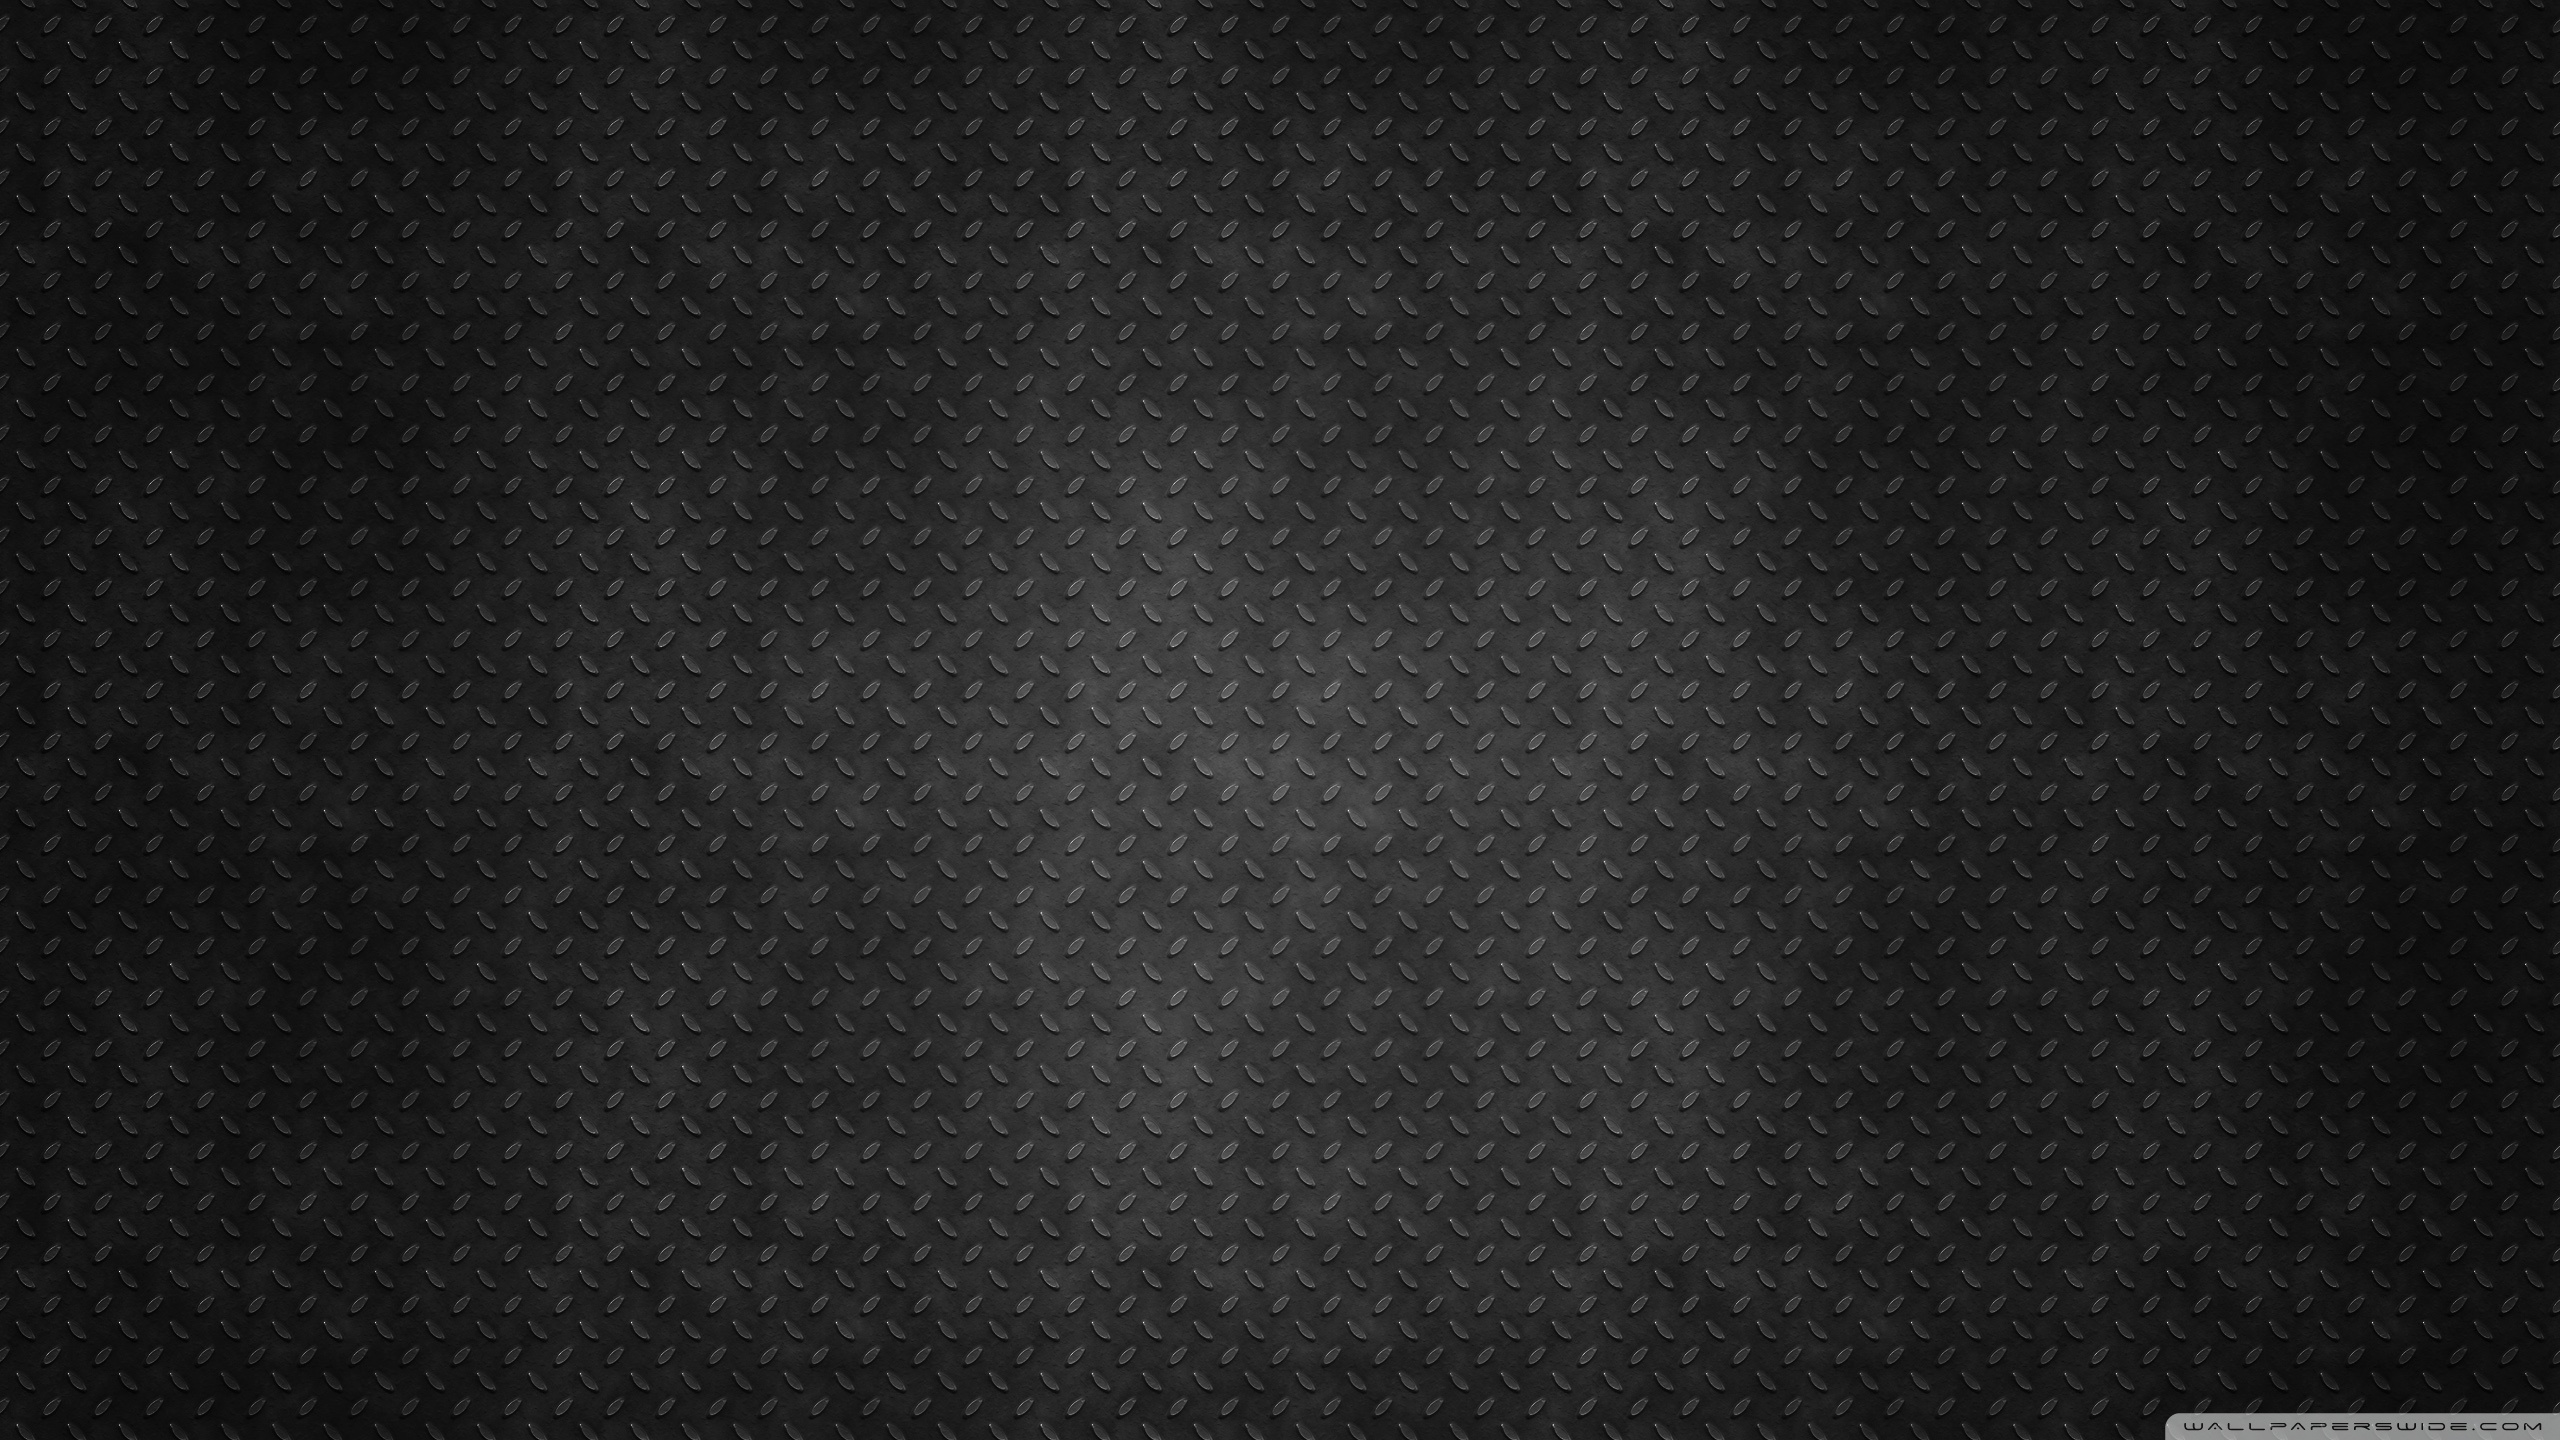 2560x1440 Backgrounds Group (94+)